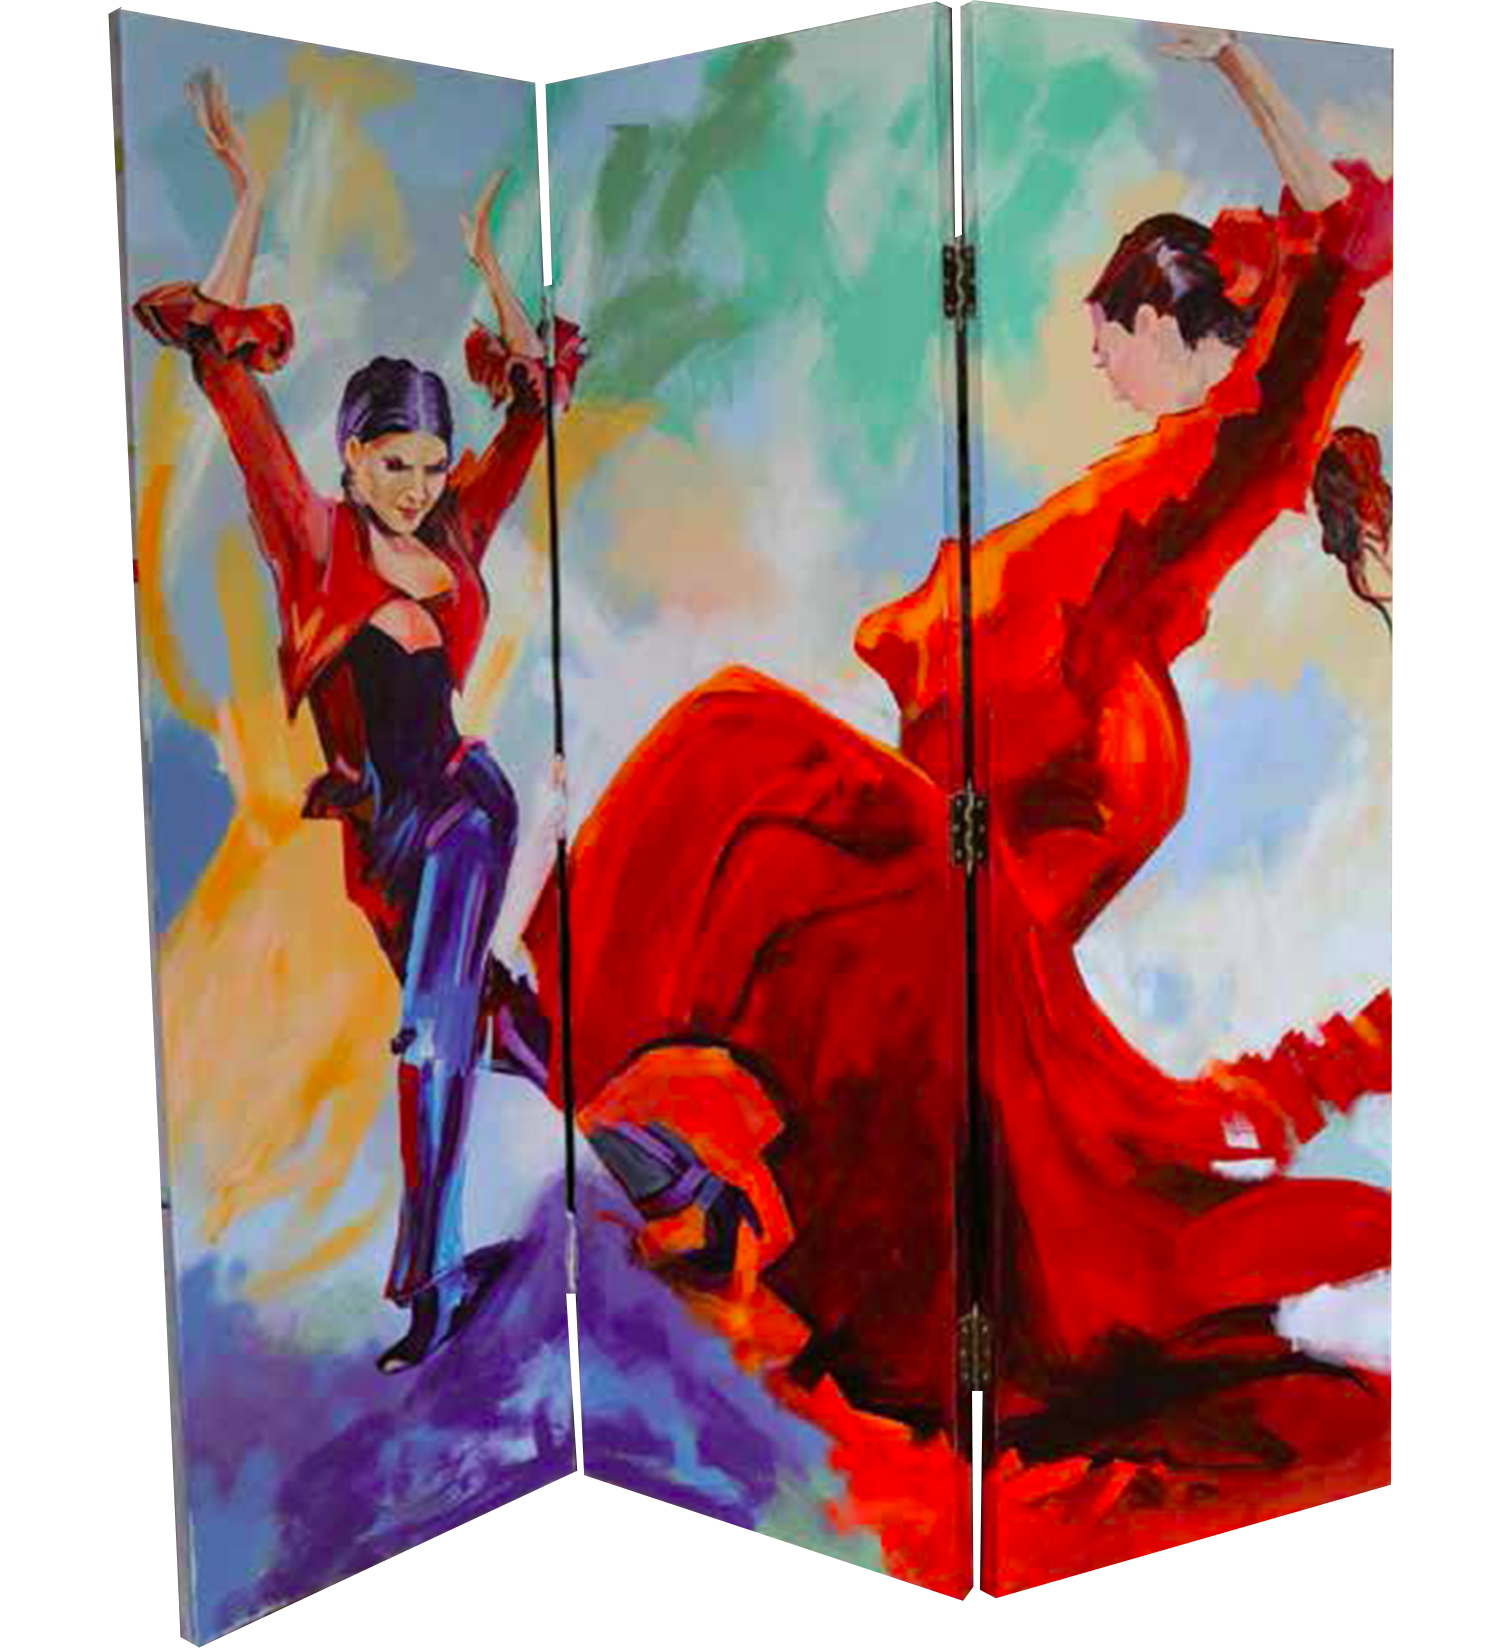 Folding Screens, Biombos, Art by Maite Rodriguez